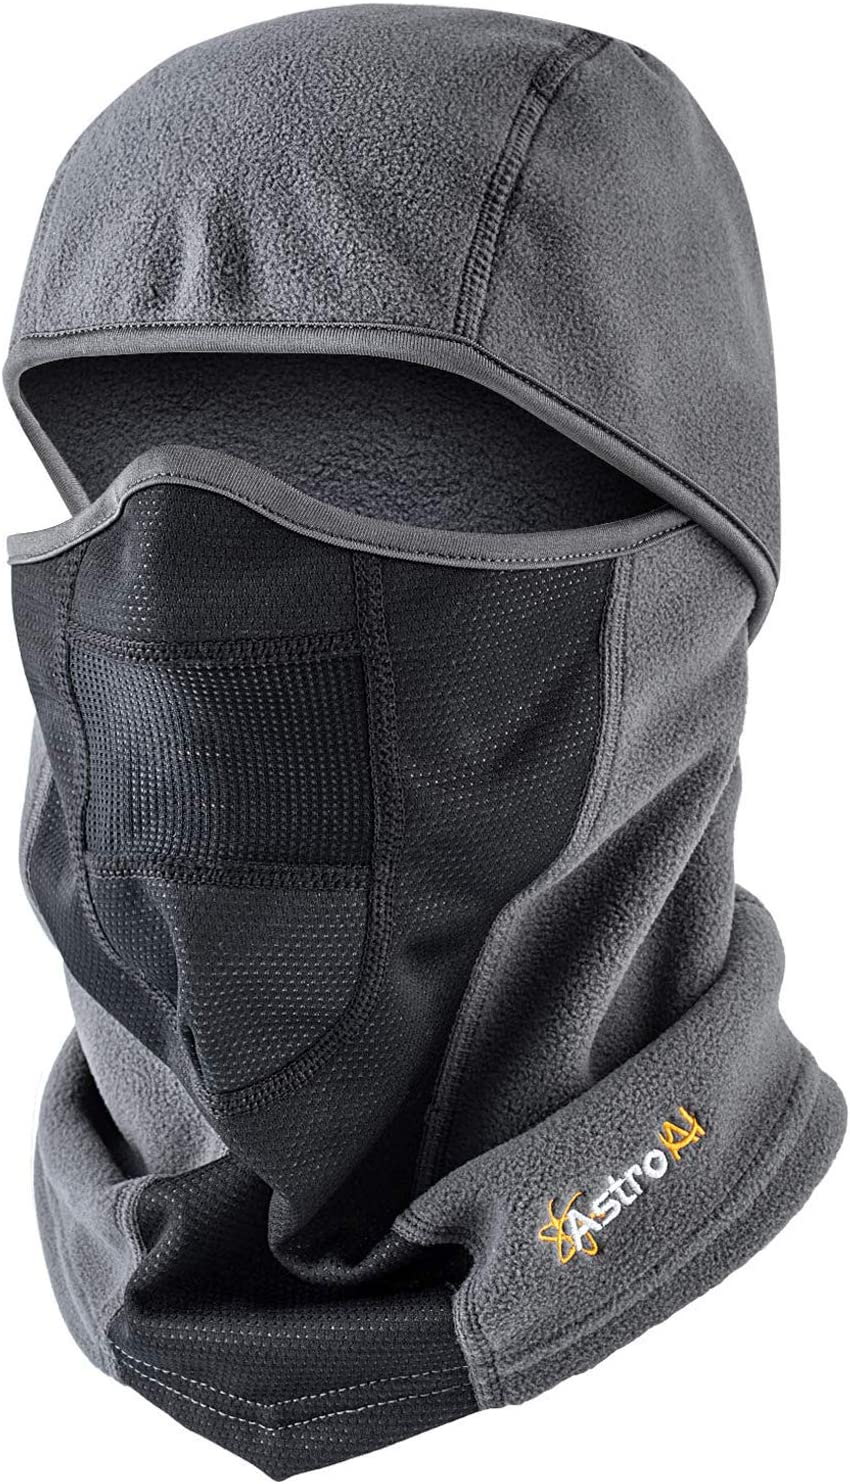 AstroAI Ski Mask Winter Face Mask Balaclava for Cold Weather Windproof Breathable for Men Women Skiing Snowboarding & Motorcycle Riding, Grey: Automotive